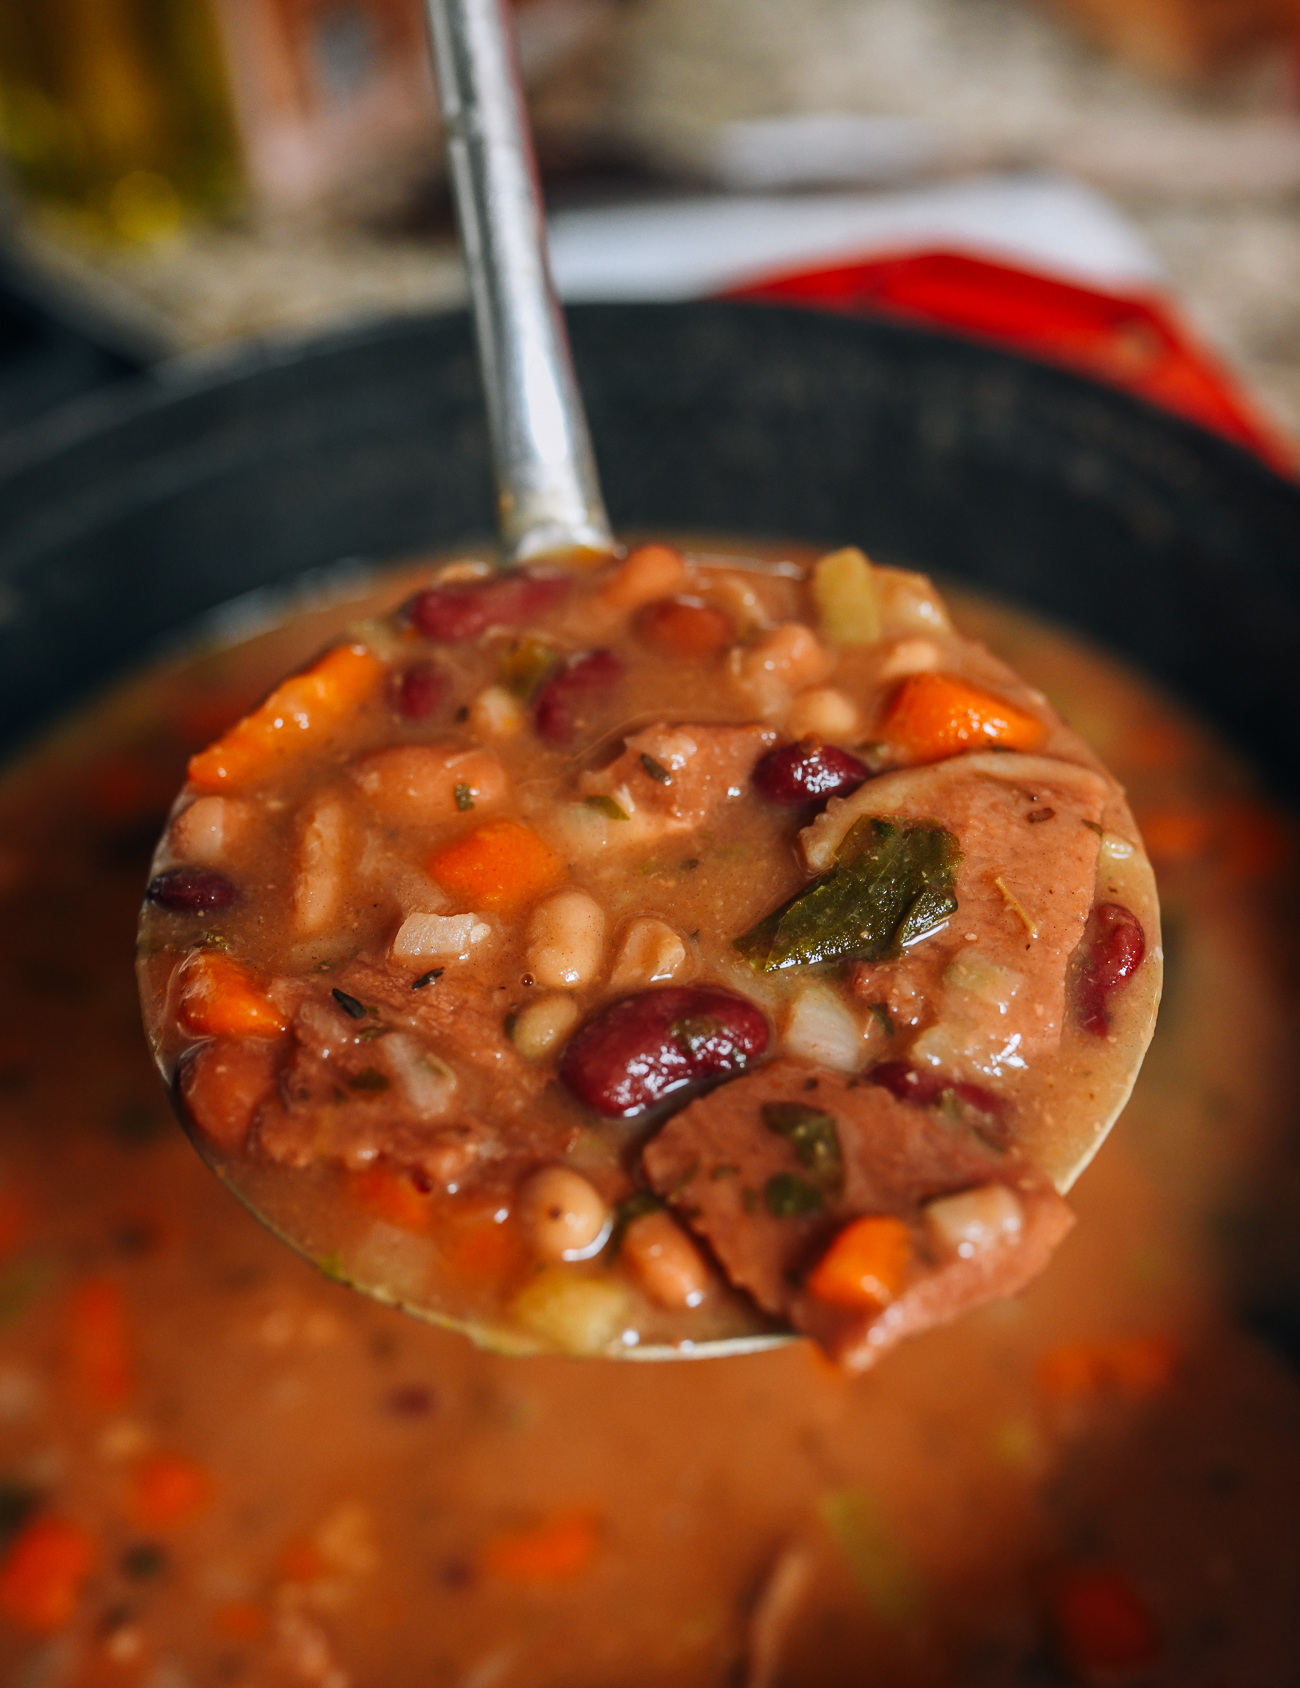 Ladle full of ham and bean soup